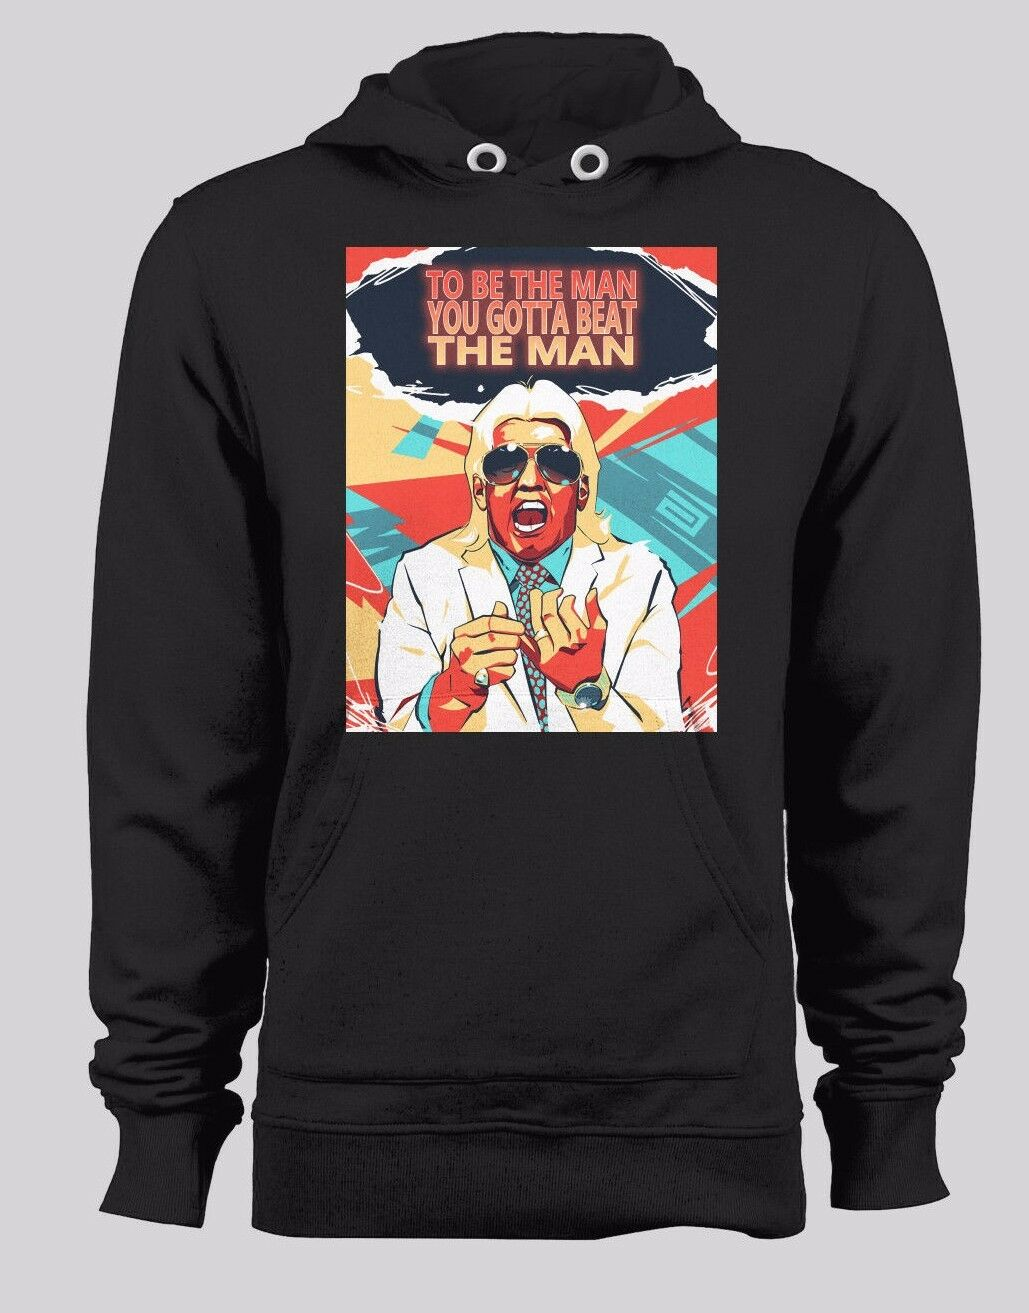 RIC FLAIR WINTER HOODIE OLDSKOOL TO BE THE MAN CUSTOM QUALITY MANY OPTIONS